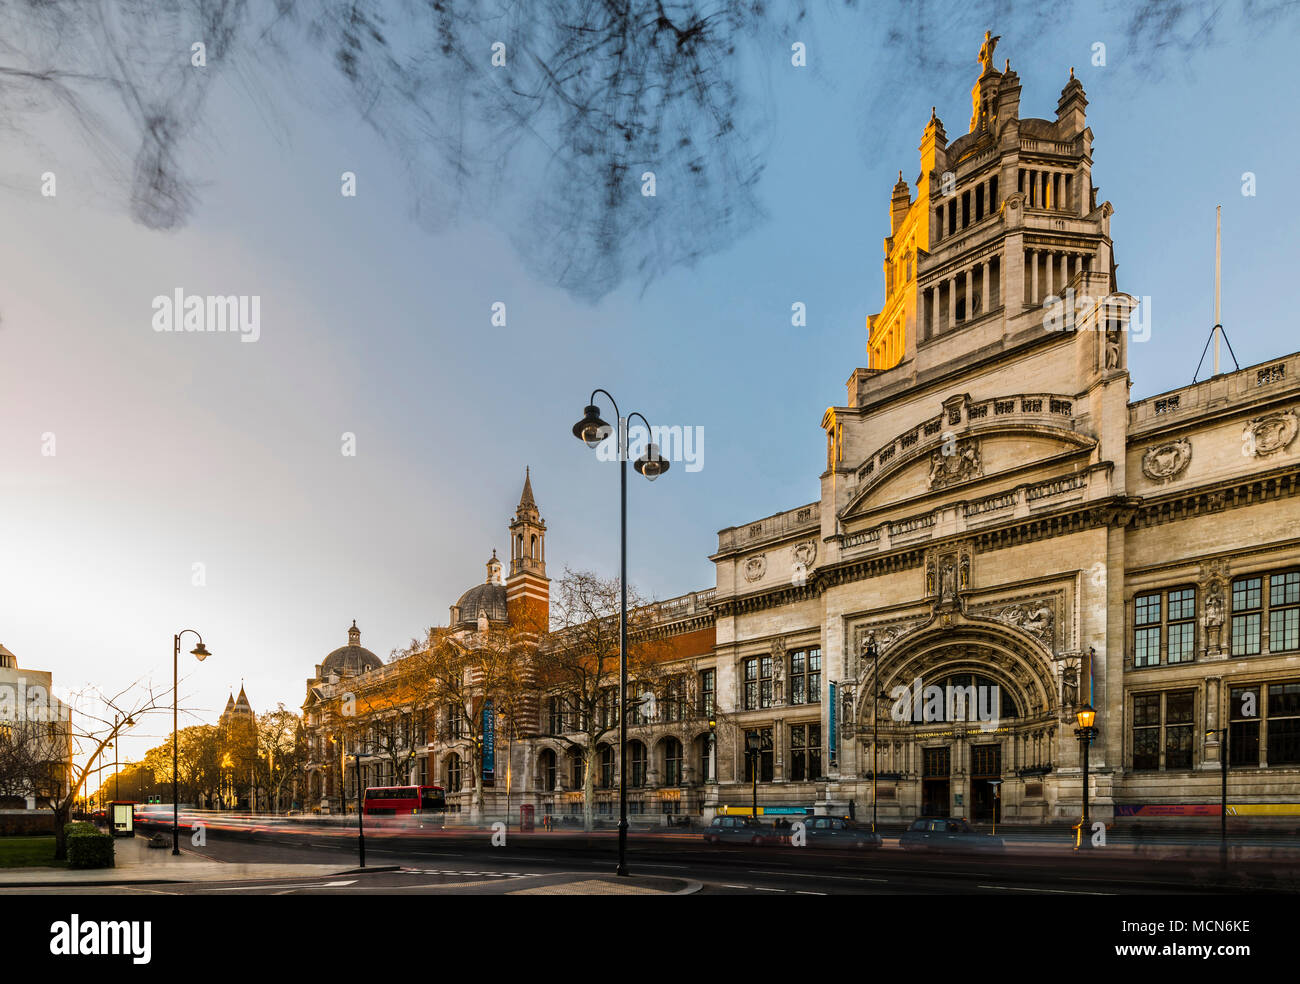 Sunset at the V&A Museum, South Kensington, London, UK - Stock Image